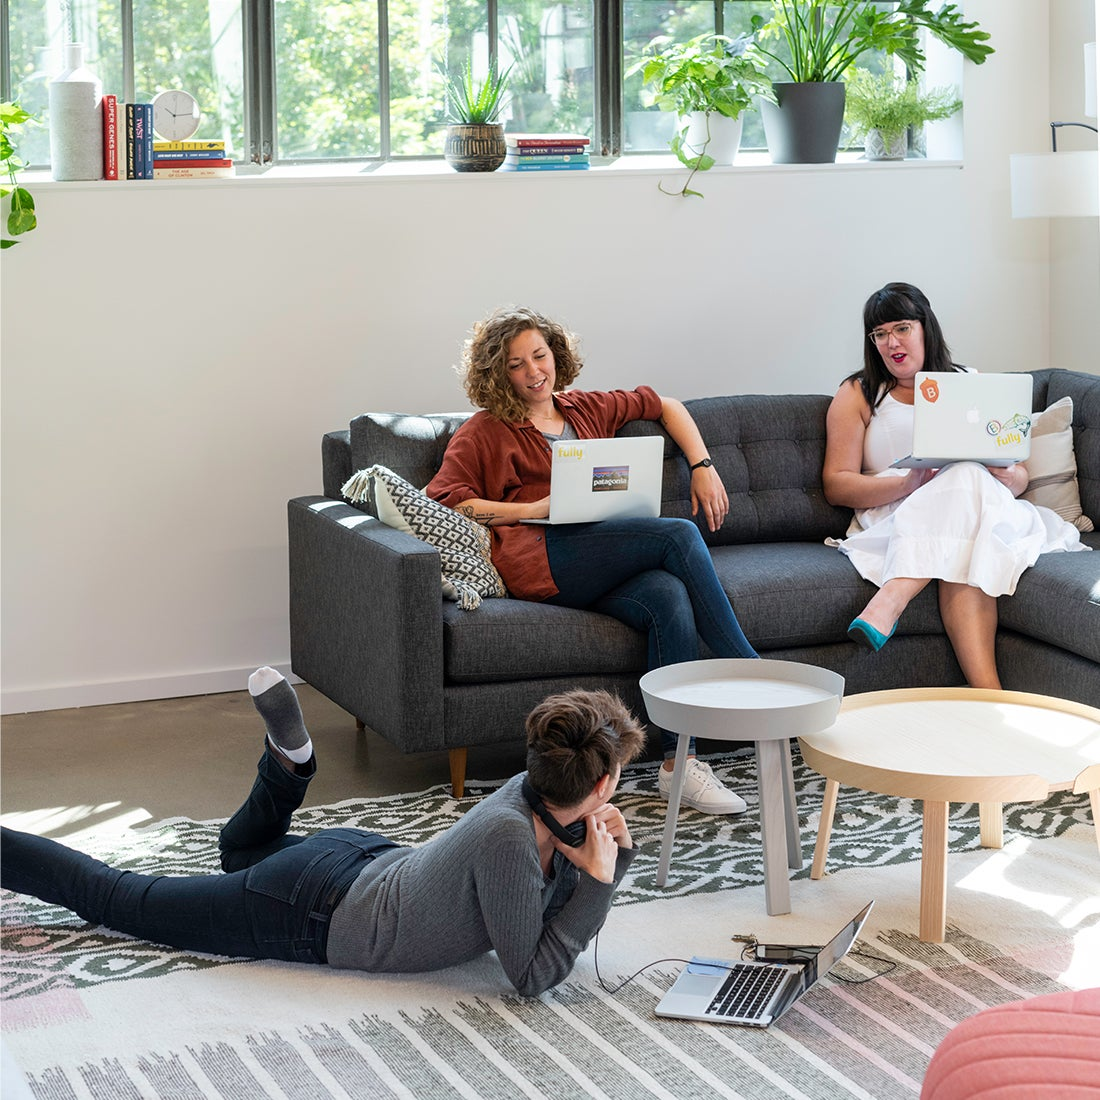 A group of people collaborating in a resimercial environment